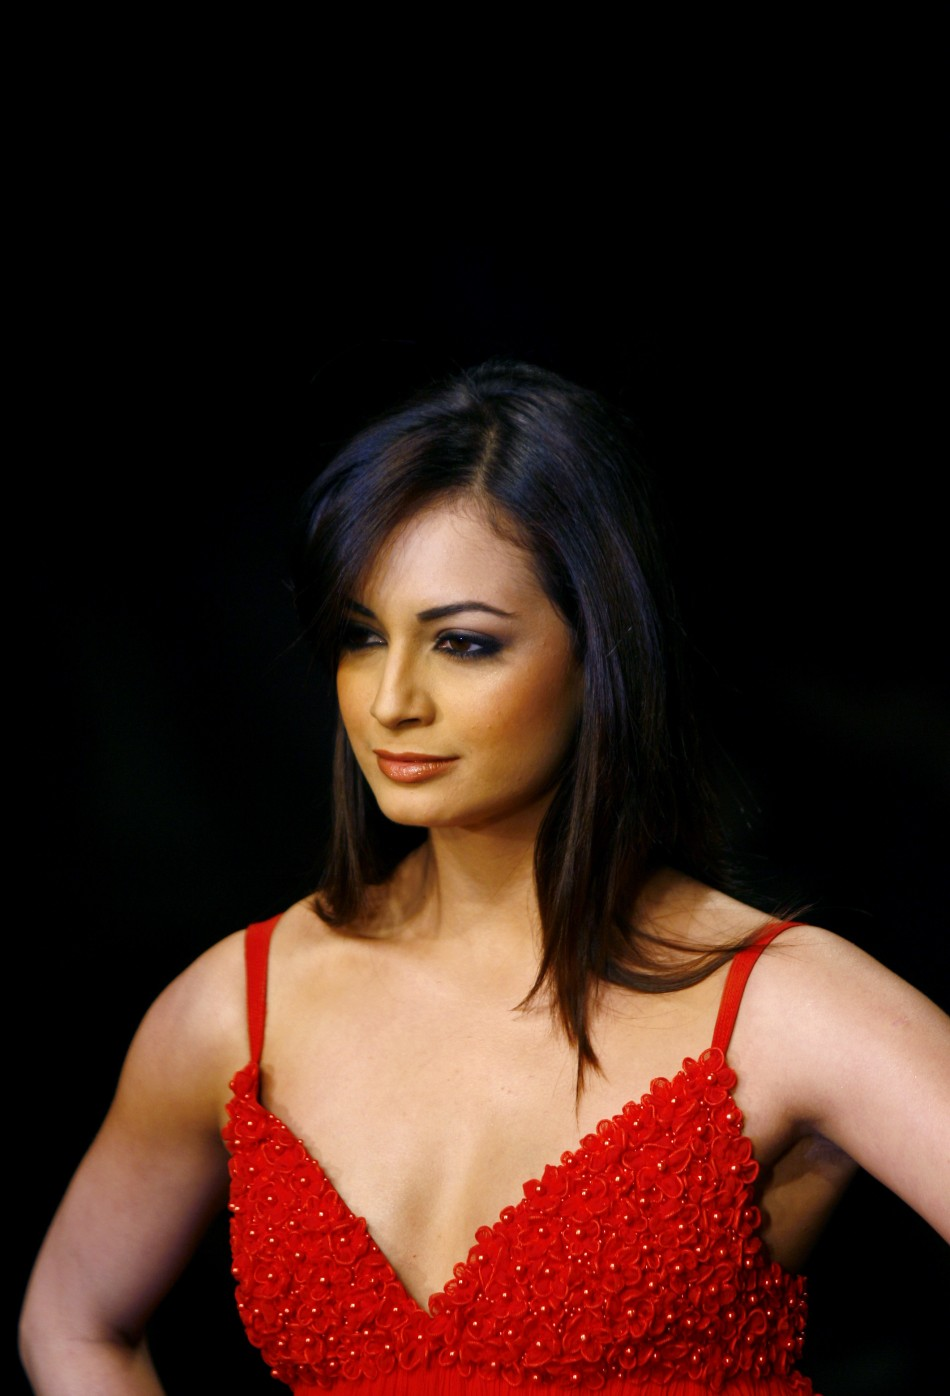 dia mirza movie listdia mirza wiki, dia mirza films, dia mirza husband, dia mirza diet plan, dia mirza fashion, dia mirza hd wallpapers, dia mirza performance, dia mirza instagram, dia mirza filmography, dia mirza and aishwarya rai, dia mirza, dia mirza wedding, dia mirza marriage, dia mirza biography, dia mirza twitter, dia mirza songs, dia mirza movie list, dia mirza family, dia mirza and sahil sangha, dia mirza wedding pics